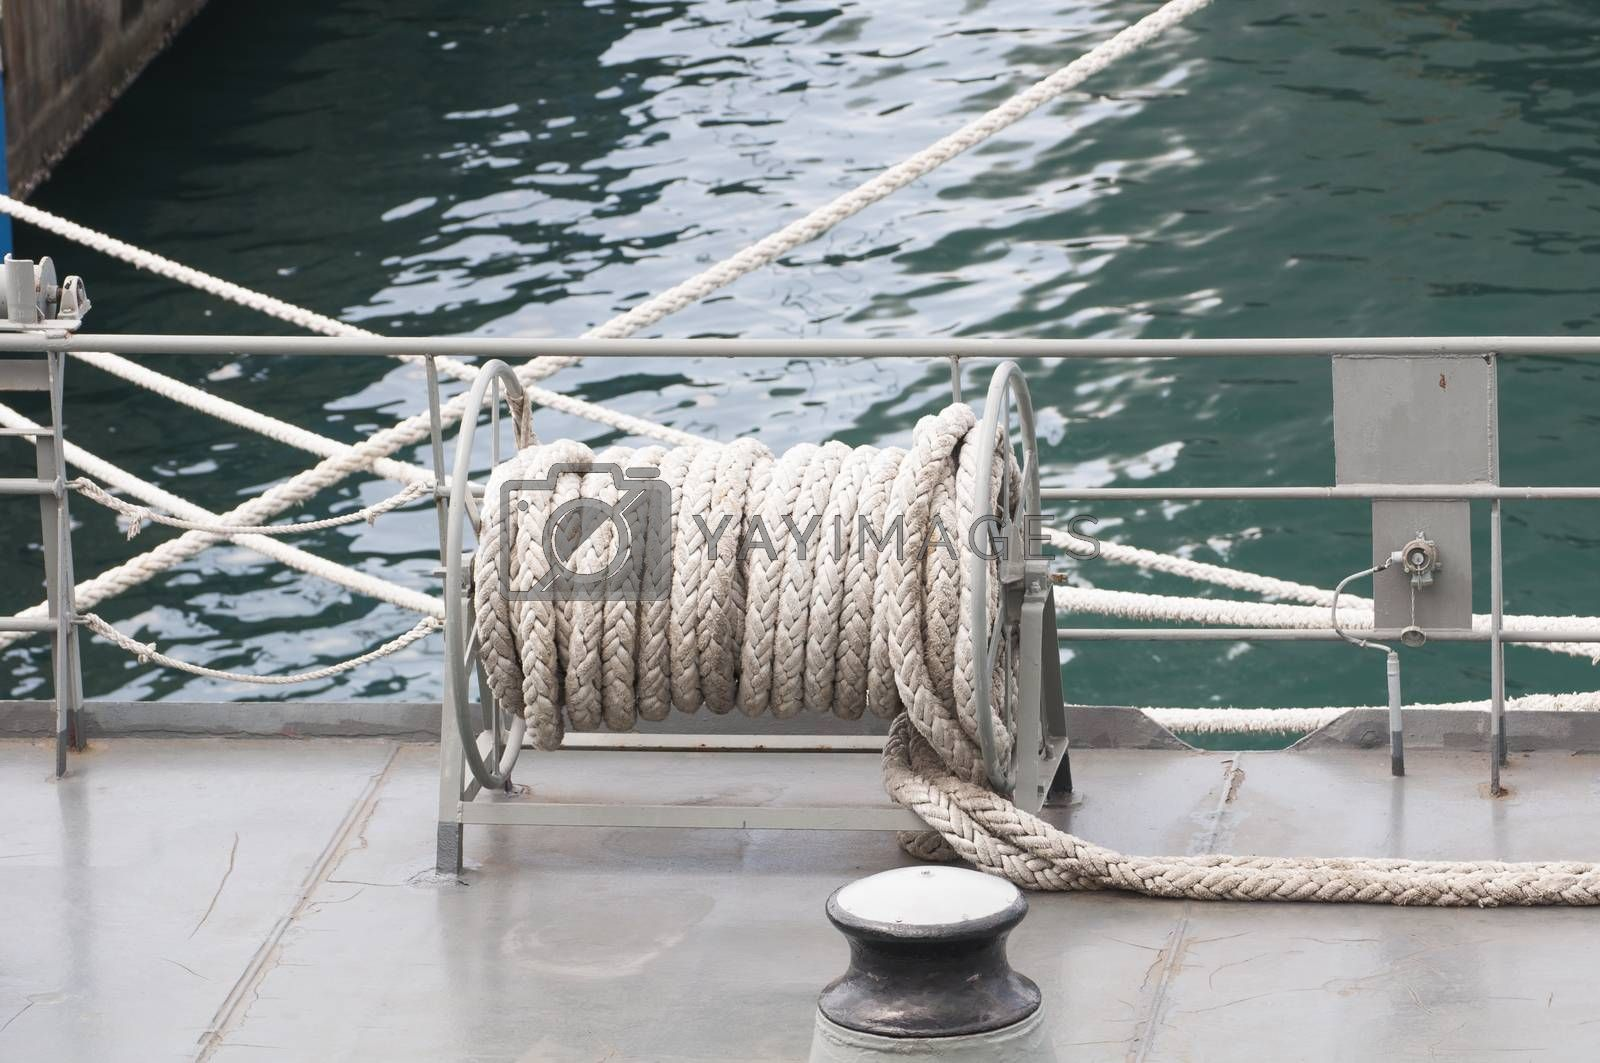 Royalty free image of roll of rope at the warship by Sorapop